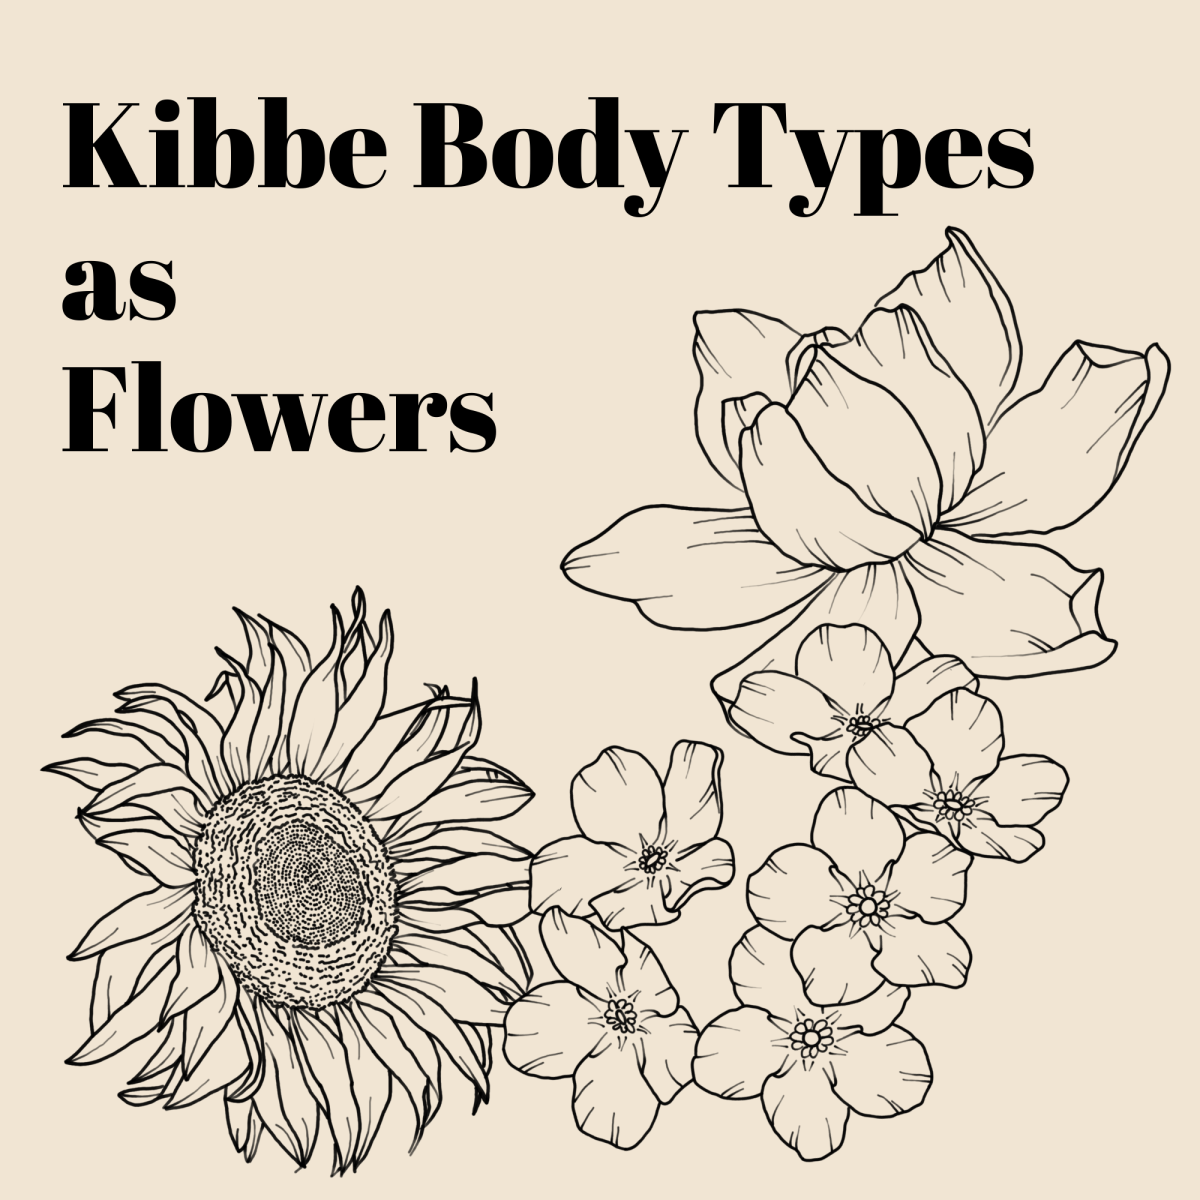 """A line art drawing of some forget-me-nots, a gardenia, and a sunflower, with the text """"Kibbe Body Types as Flowers"""" above it"""